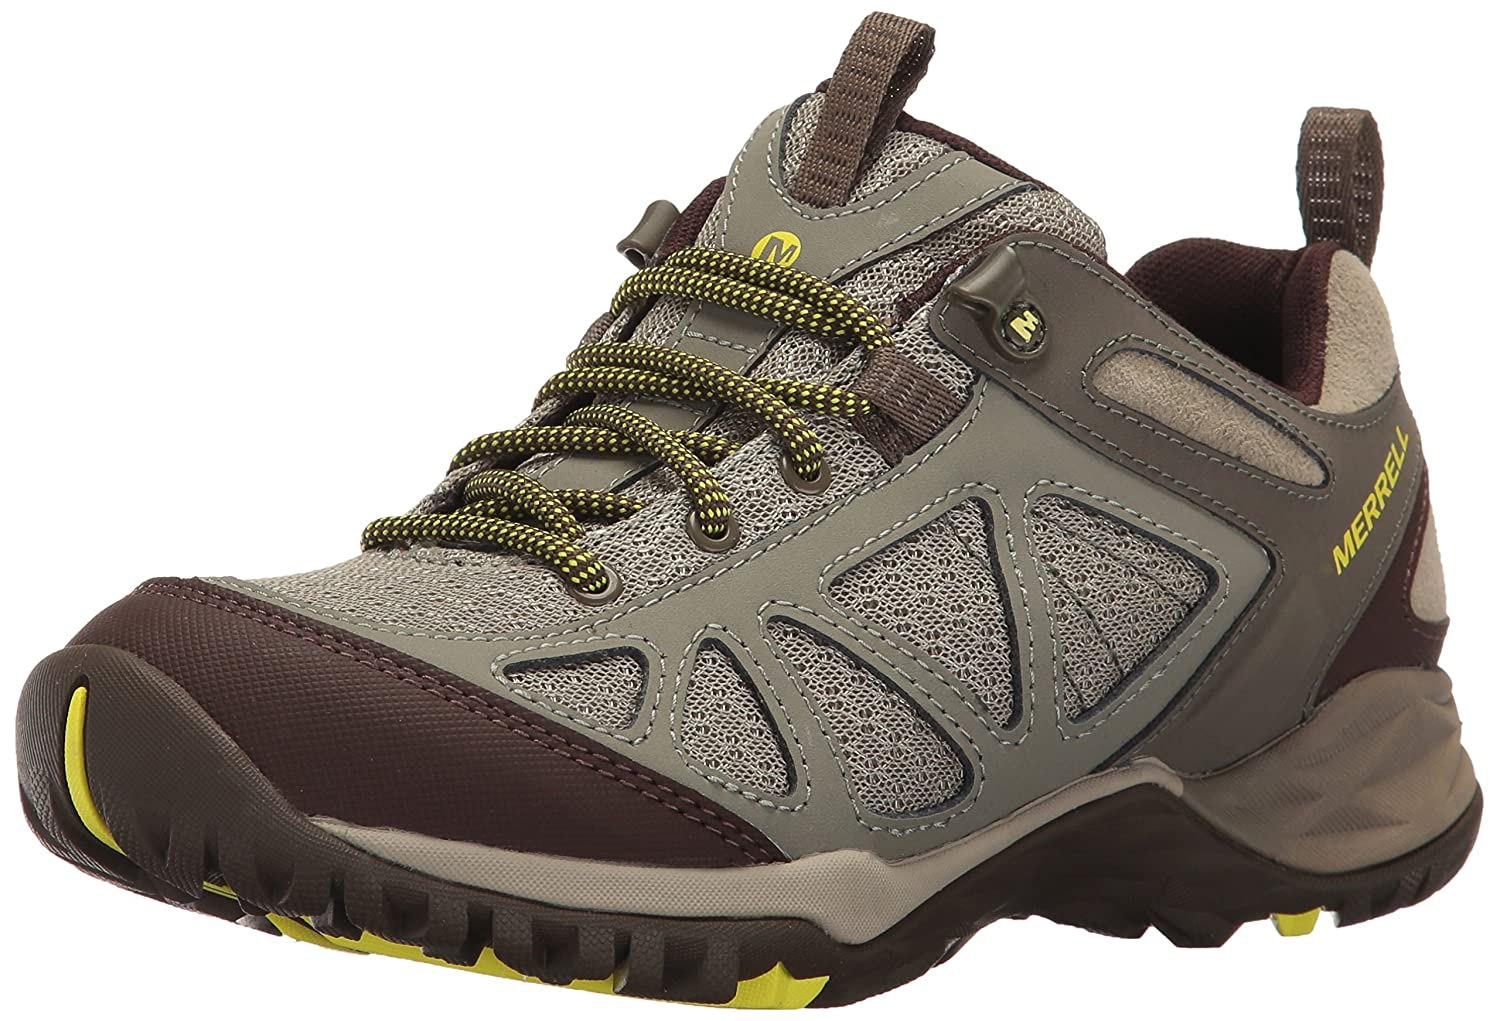 Merrell Women's Siren Sport Q2 Hiking Shoe B01HFRXKKC 7 B(M) US|Dusty Olive